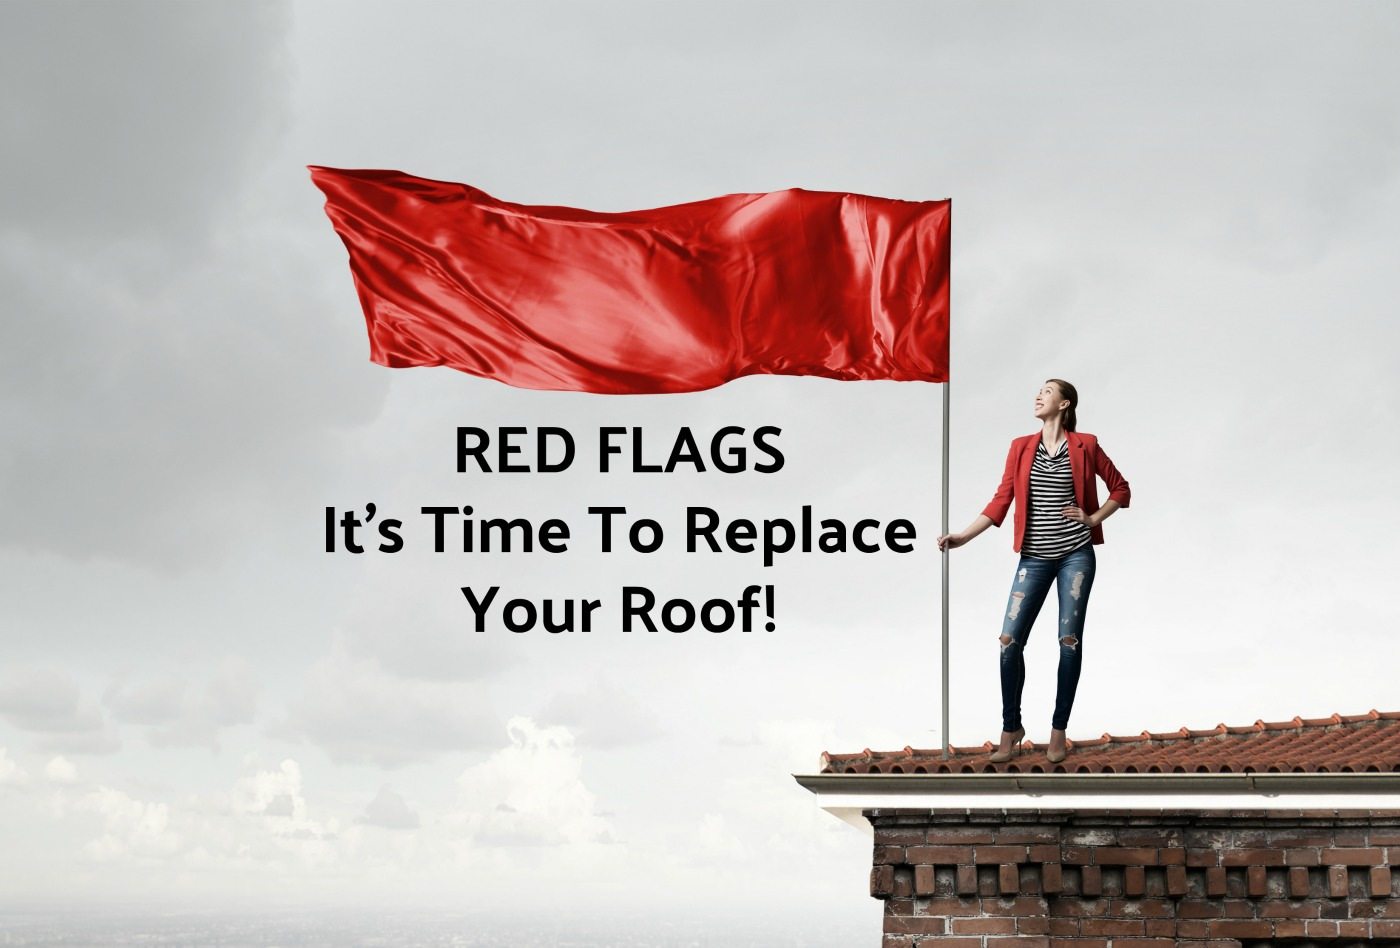 Red Flags It's Time To Call A Roofing Contractor